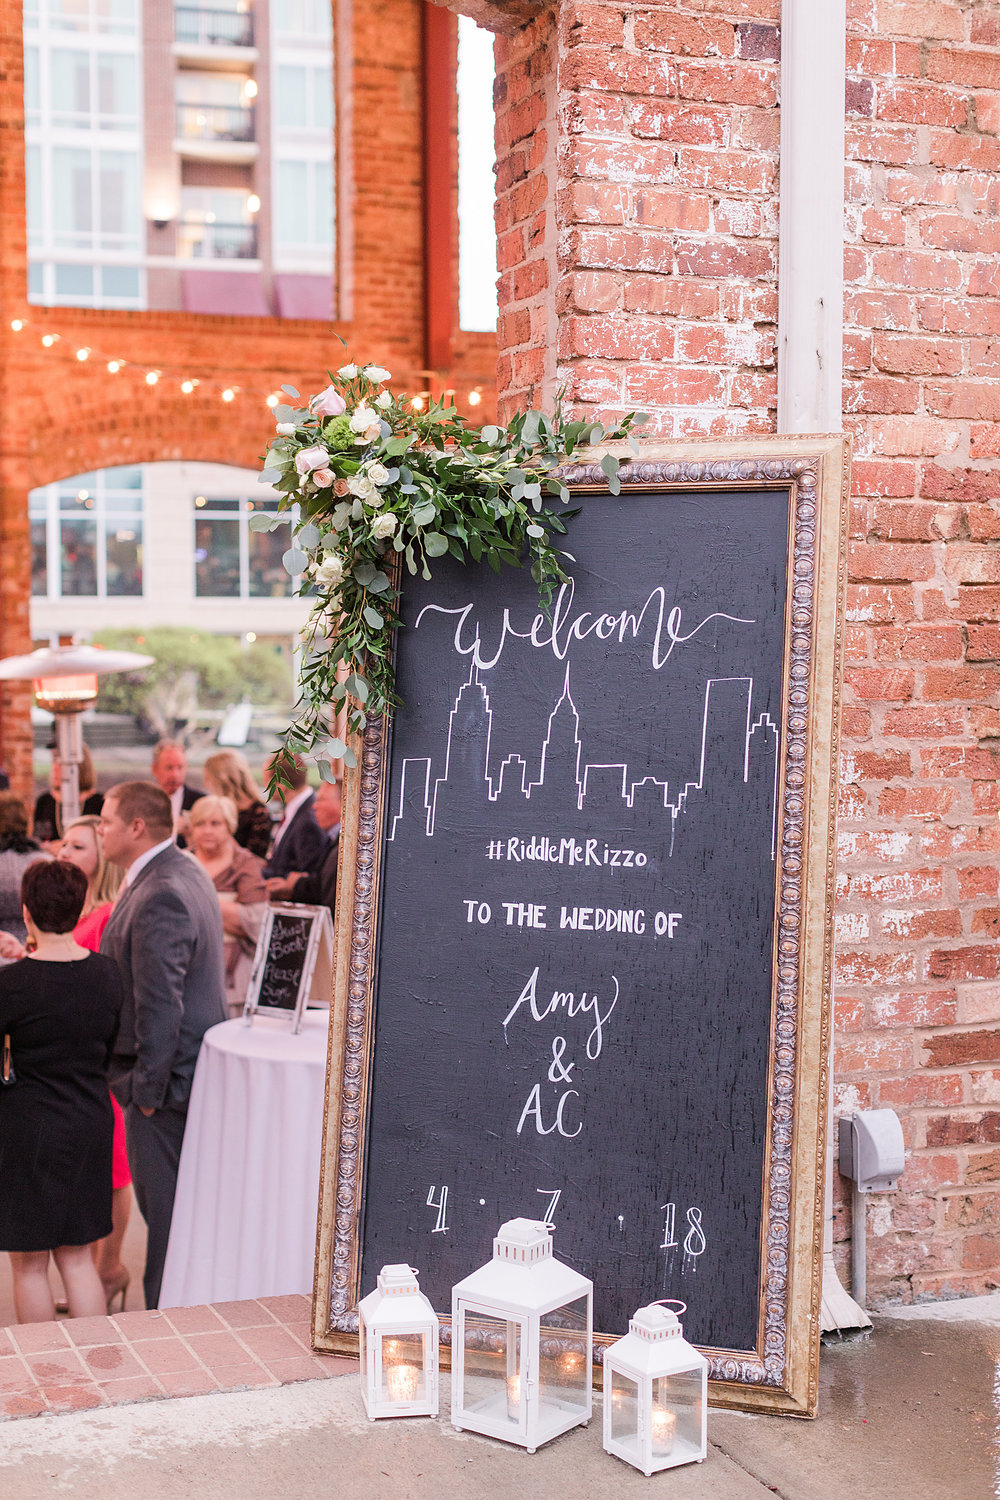 So many neat NYC touches to this Greenville wedding!